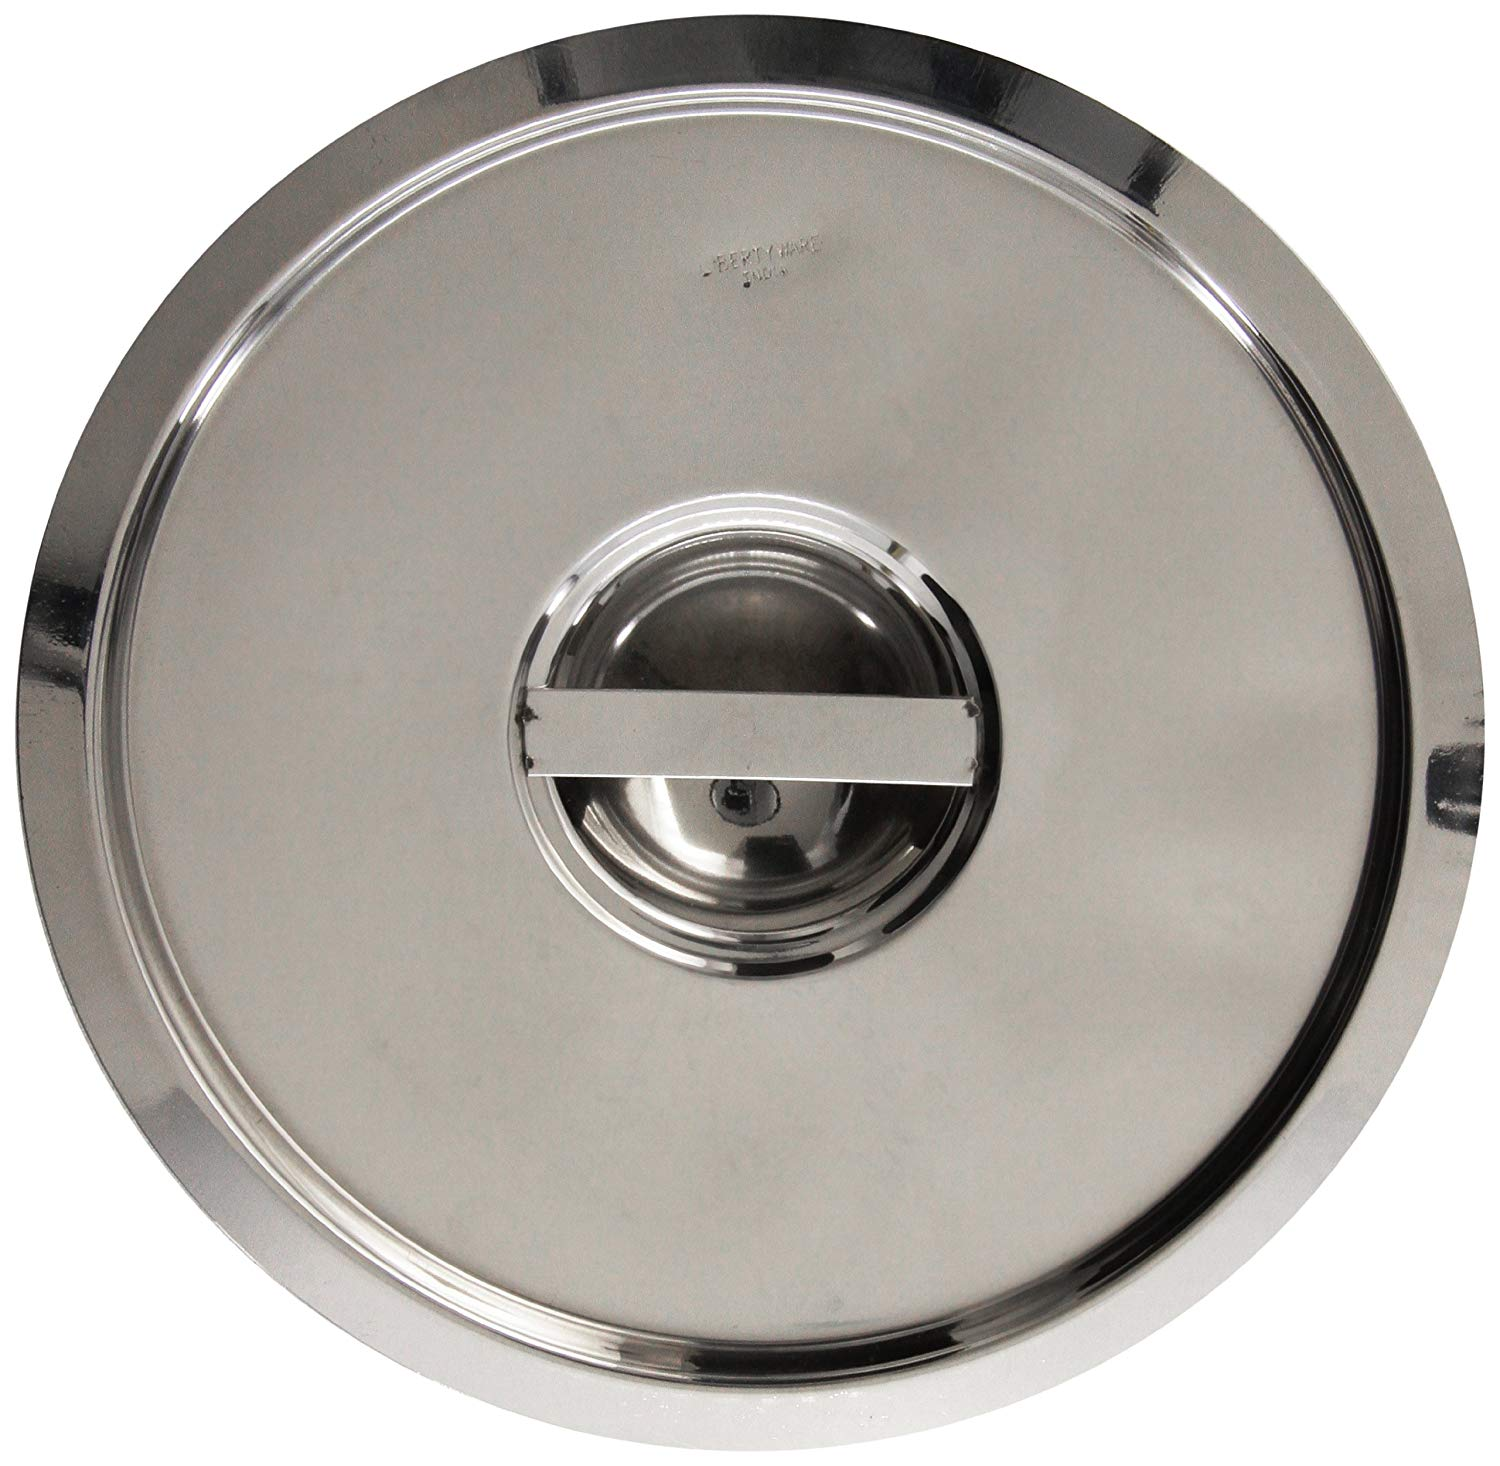 Crestware Solid Pan Cover for 8-1/4-Quart Bain Maries